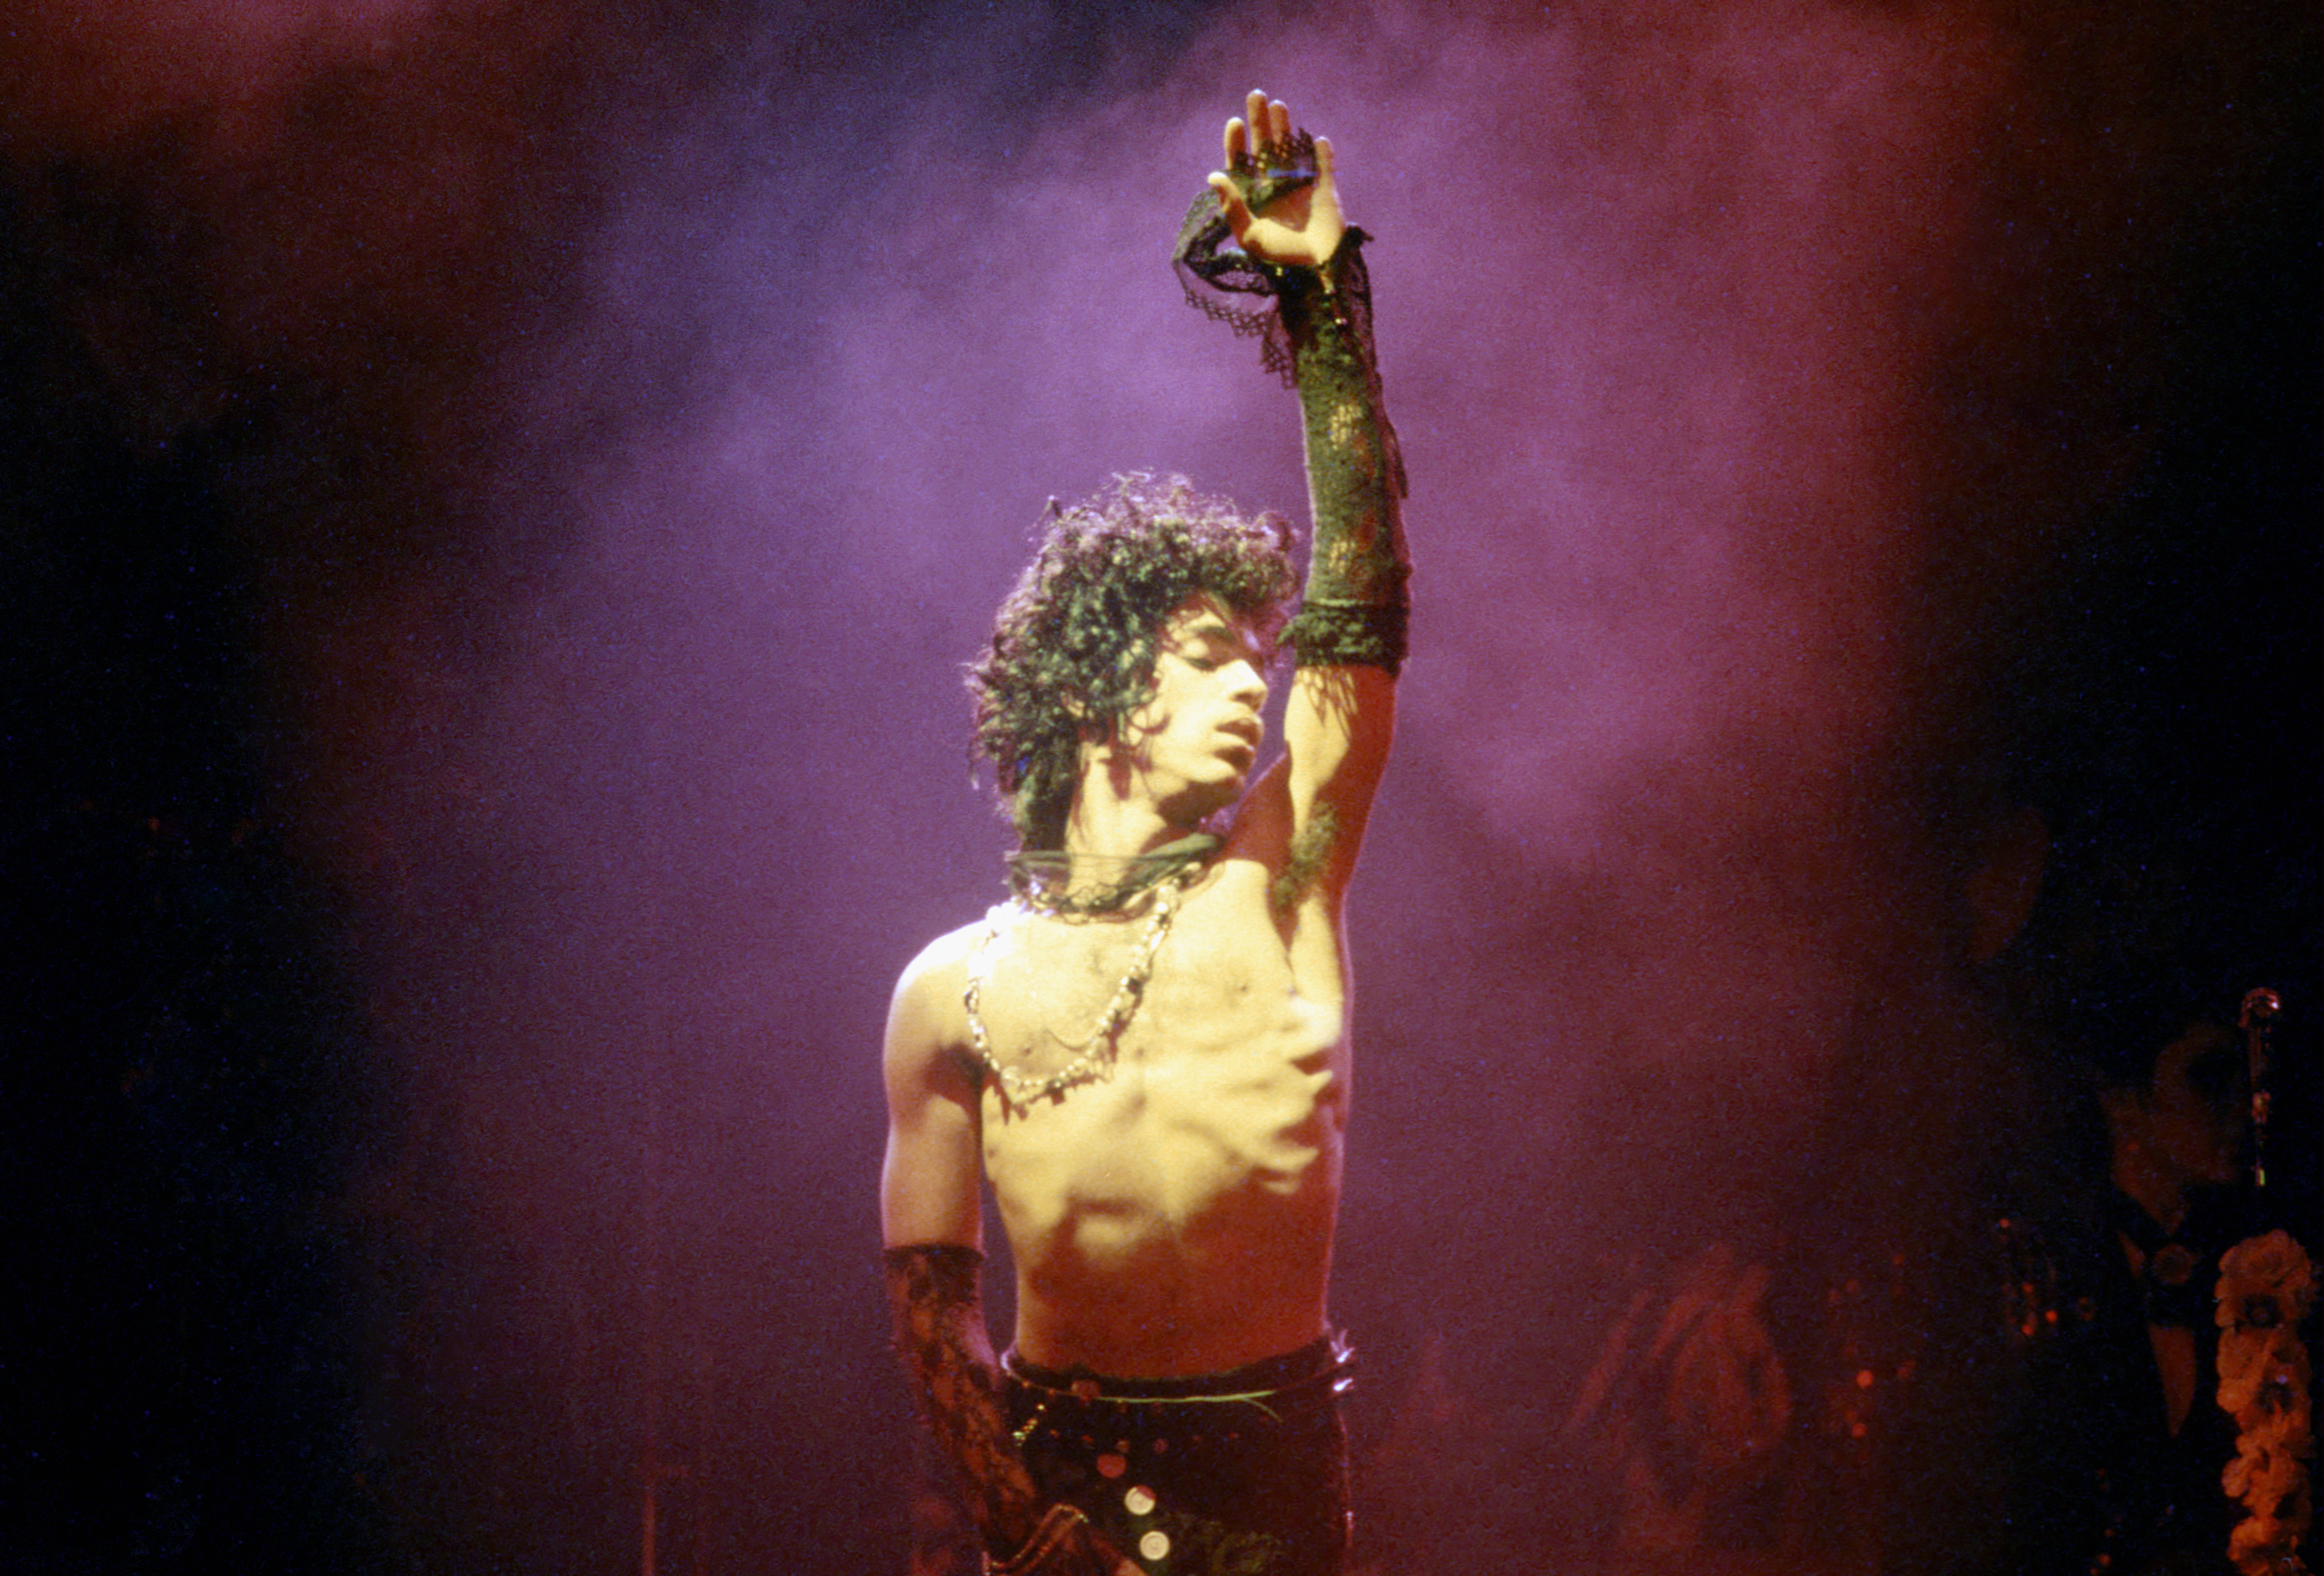 Prince performs live at the Fabulous Forum on  in Inglewood, Calif. on Feb, 19, 1985.